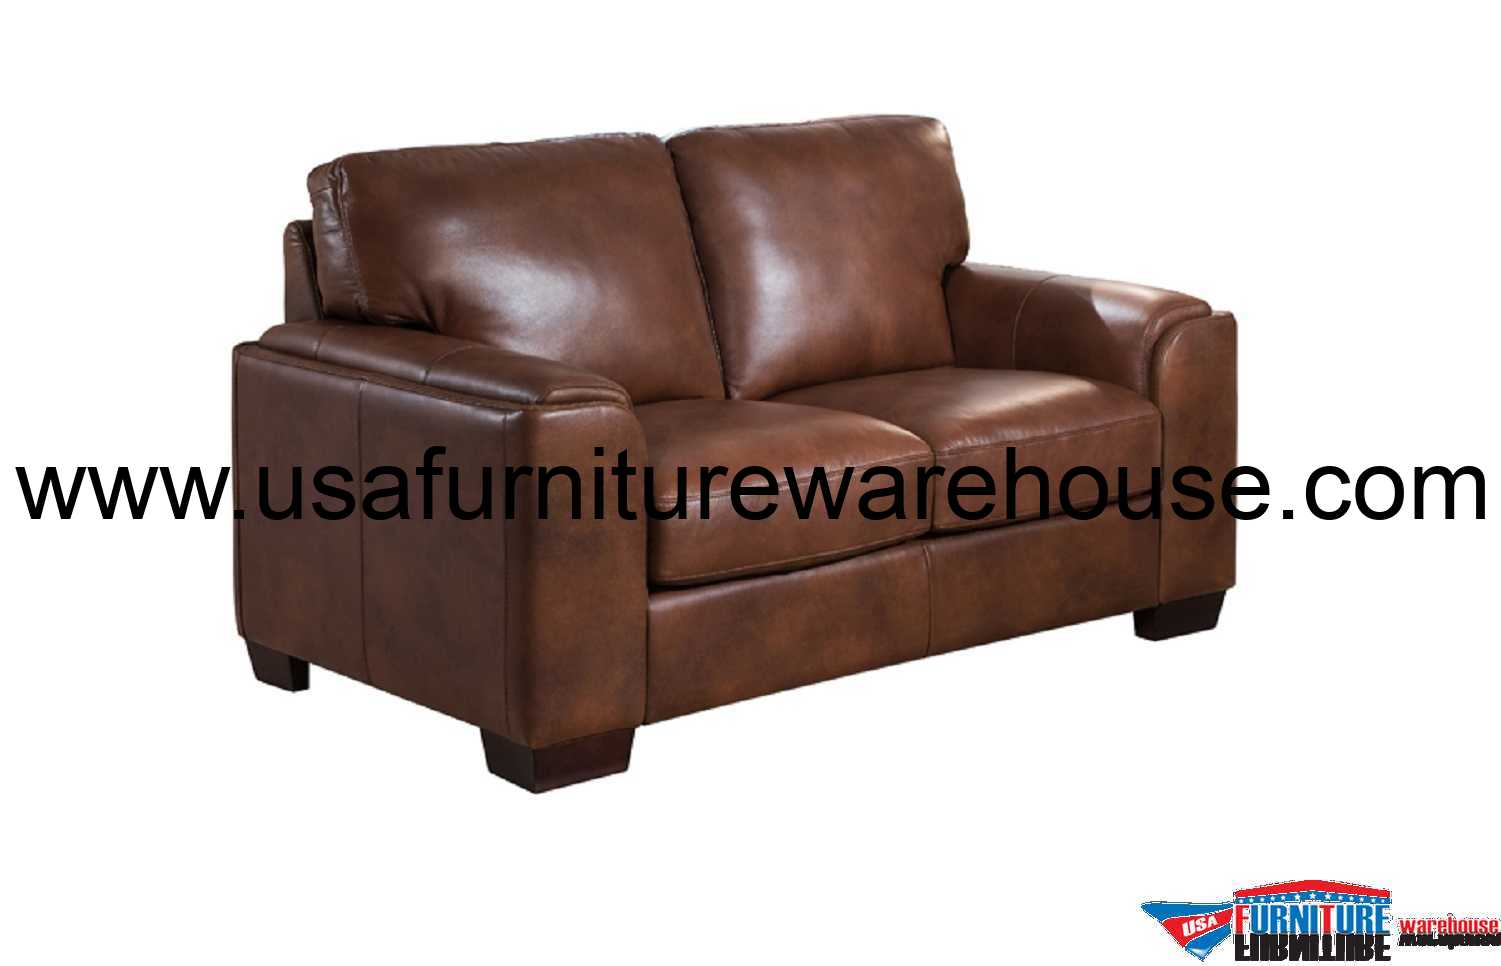 Suzanne Full Top Grain Brown Leather Loveseat : Suzanne Brown Leather Loveseat from www.usafurniturewarehouse.com size 1501 x 966 jpeg 131kB